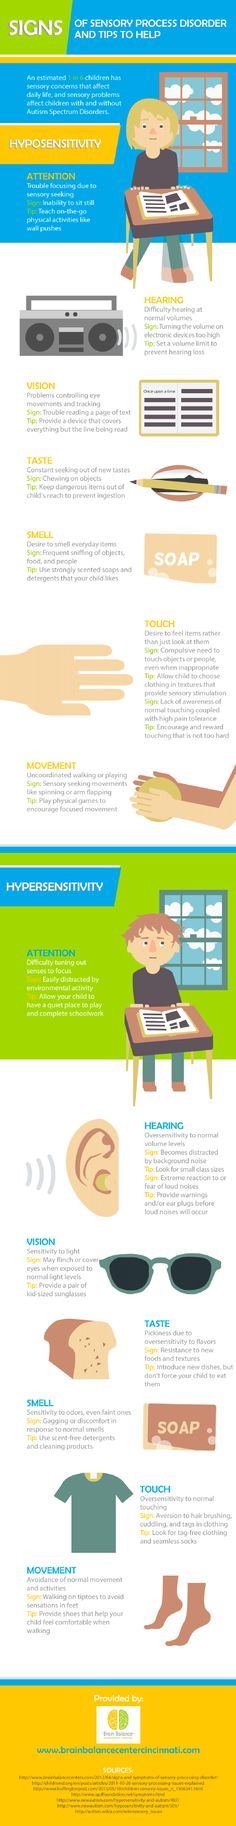 Children who are easily distracted, sensitive to light, and oversensitive to normal touching could be hypersensitive. This infographic from a child behavioral issues center in Cincinnati has more information on sensory disorders and their symptoms.